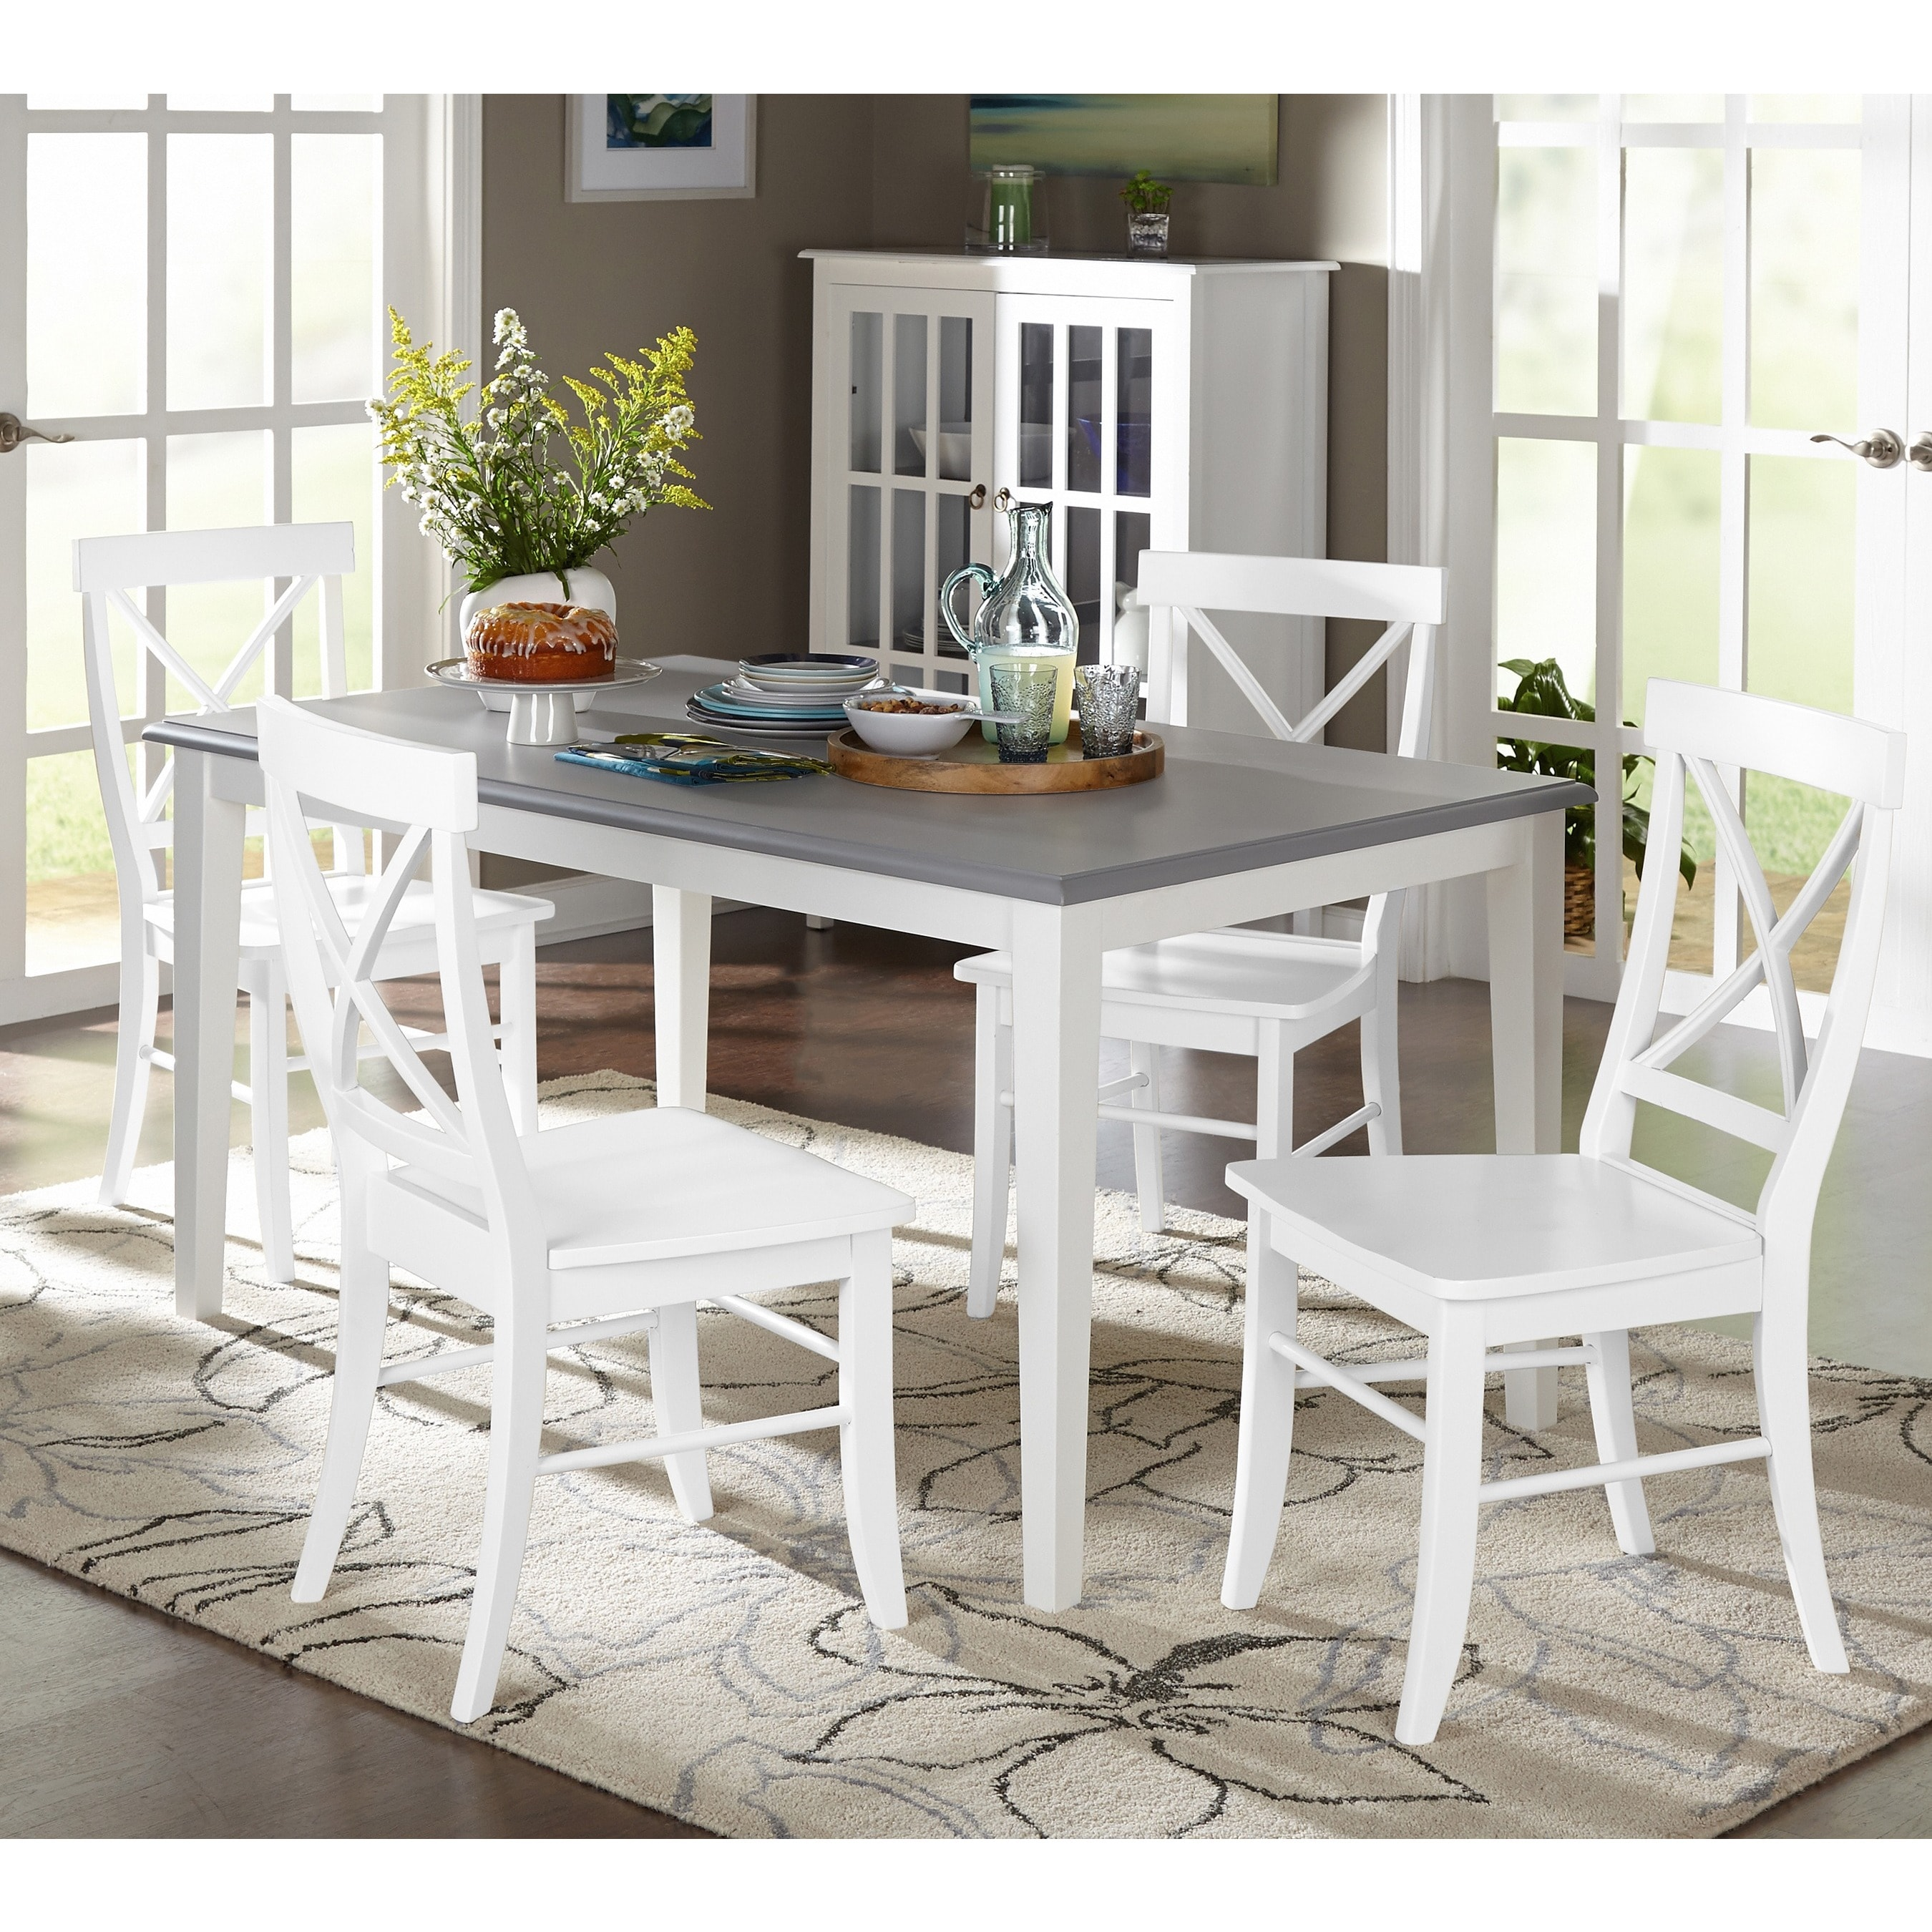 Shop Simple Living 5 piece Helena Dining Set